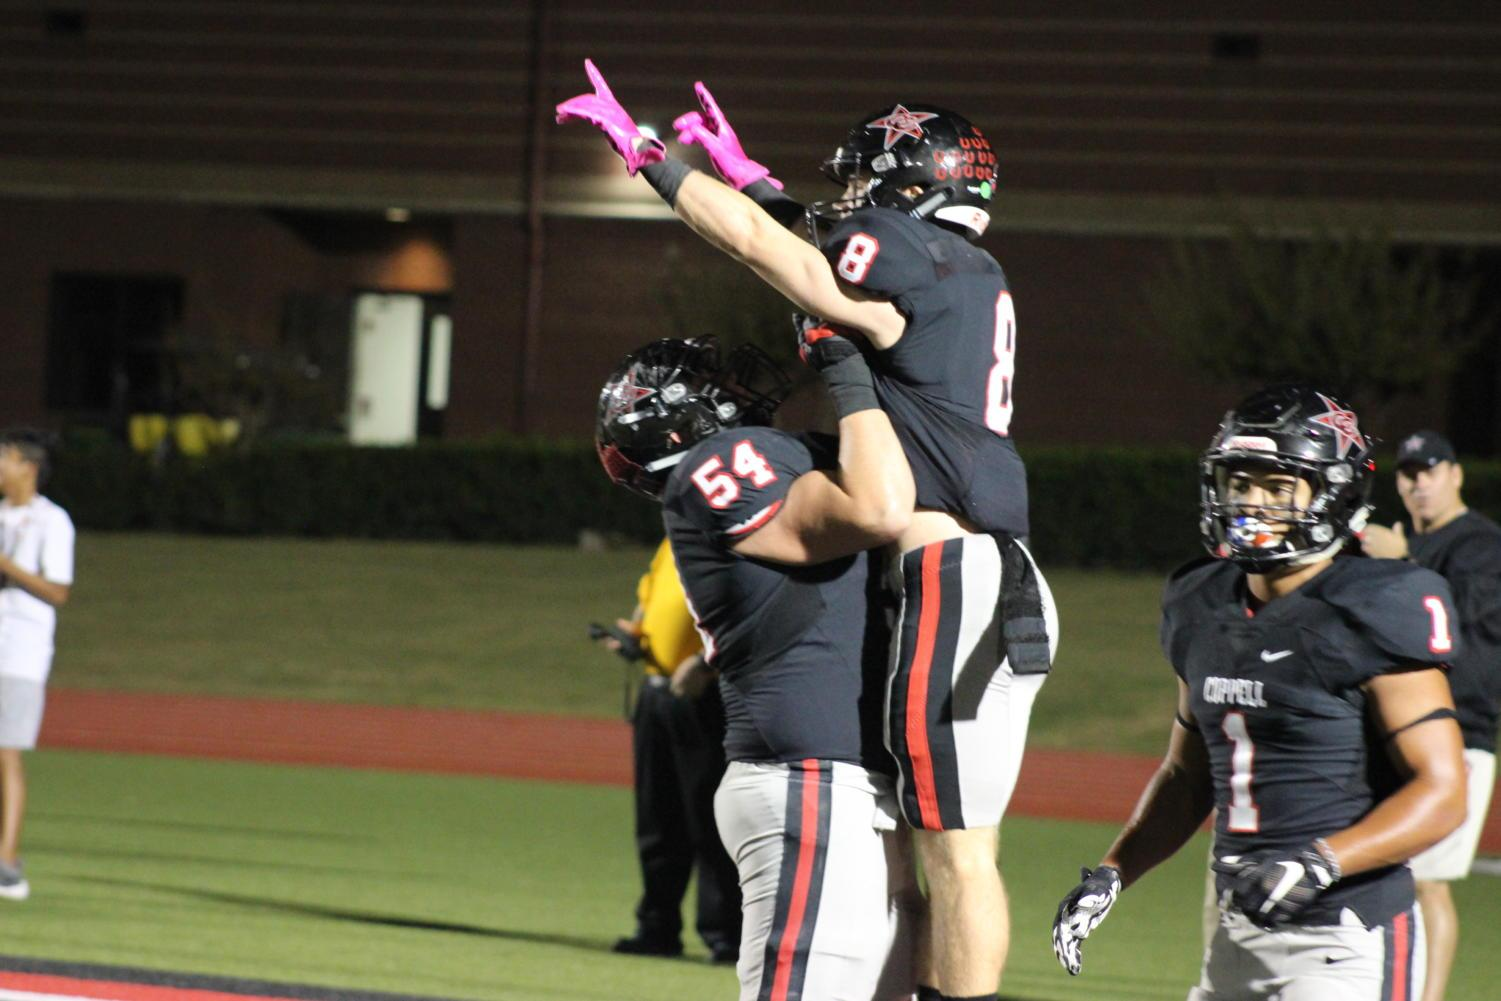 Coppell wide receiver Blake Jackson celebrates with lineman Mike Ruth after Jackson scores a touchdown on Friday night at Buddy Echols Field.  The Cowboys defeated the W.T. White Longhorns, 55-14, in District 9-6A play.